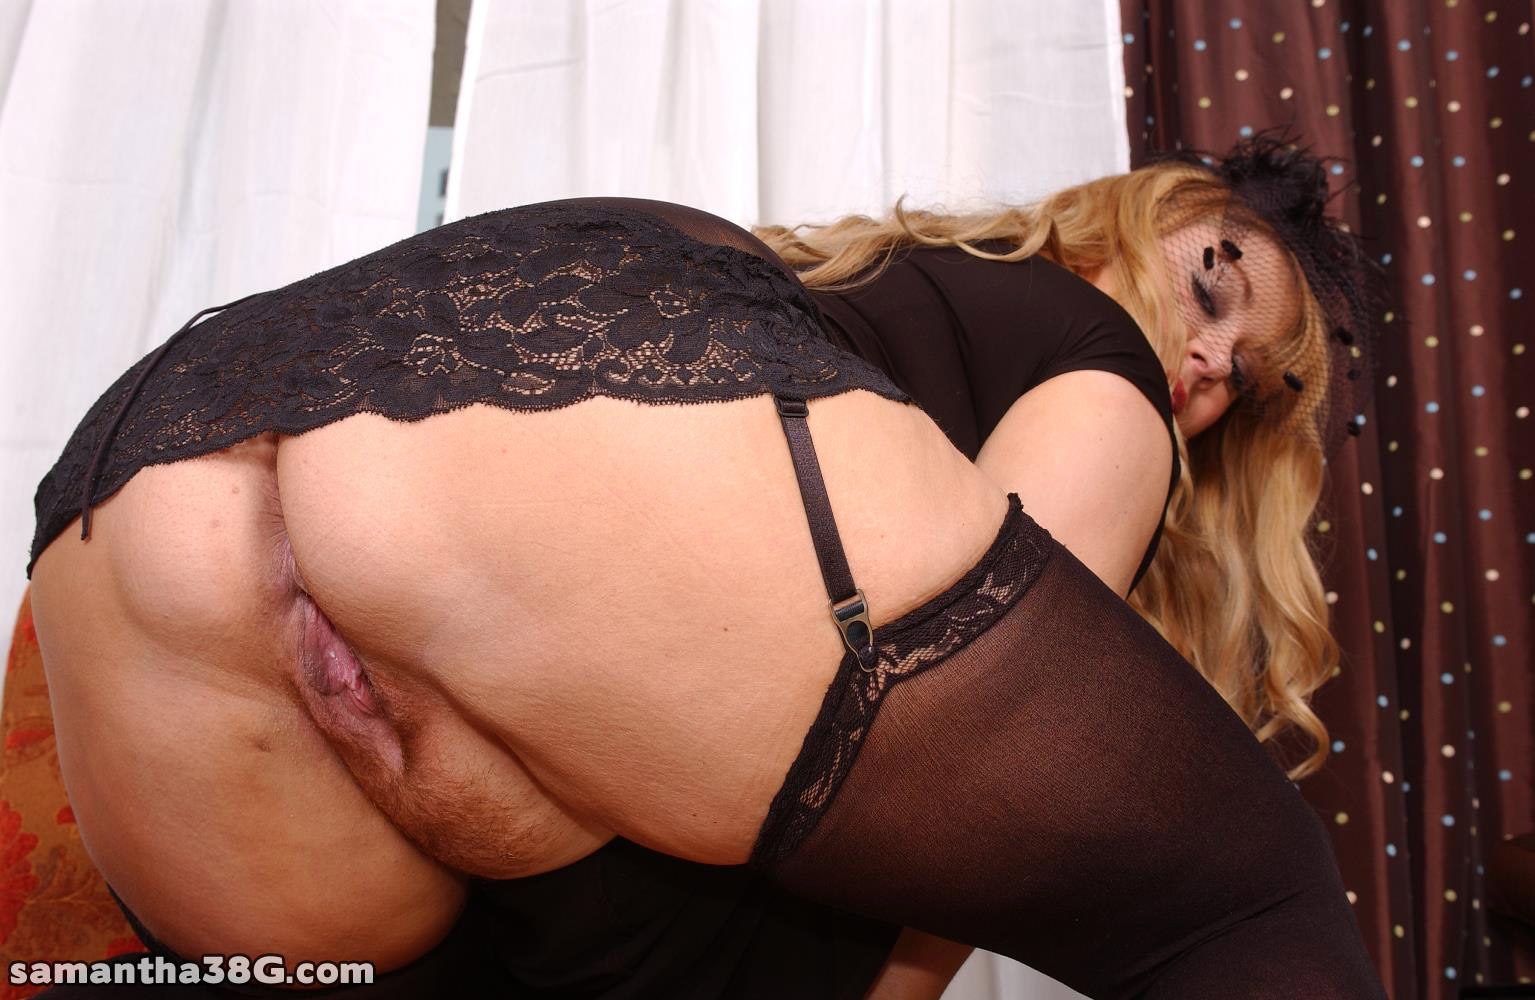 Pussy would pantyhose and heels closeups very good sex